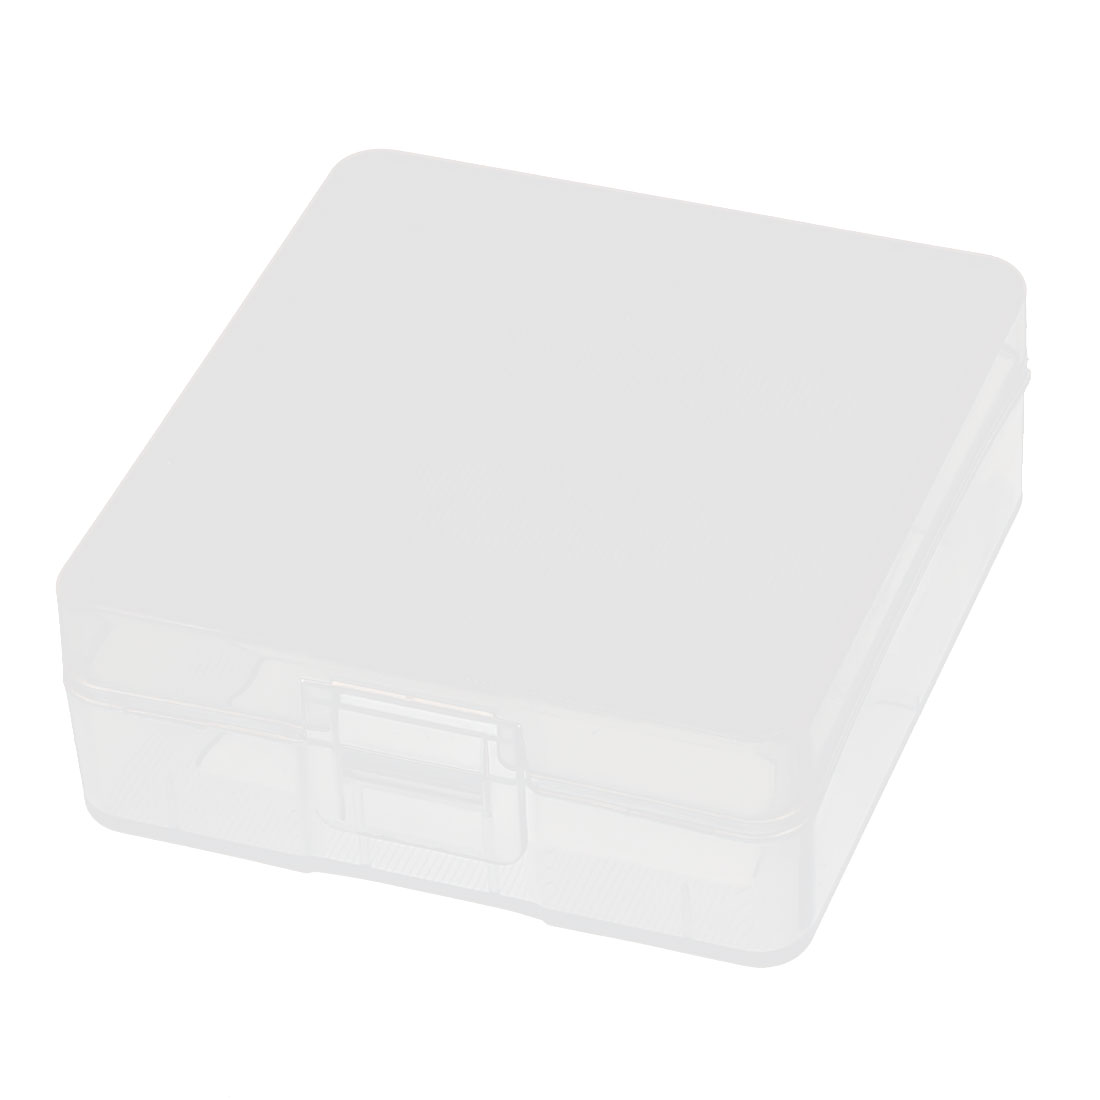 Clear Plastic Storage Box Case Container Holder for 2 x 9V Battery Batteries